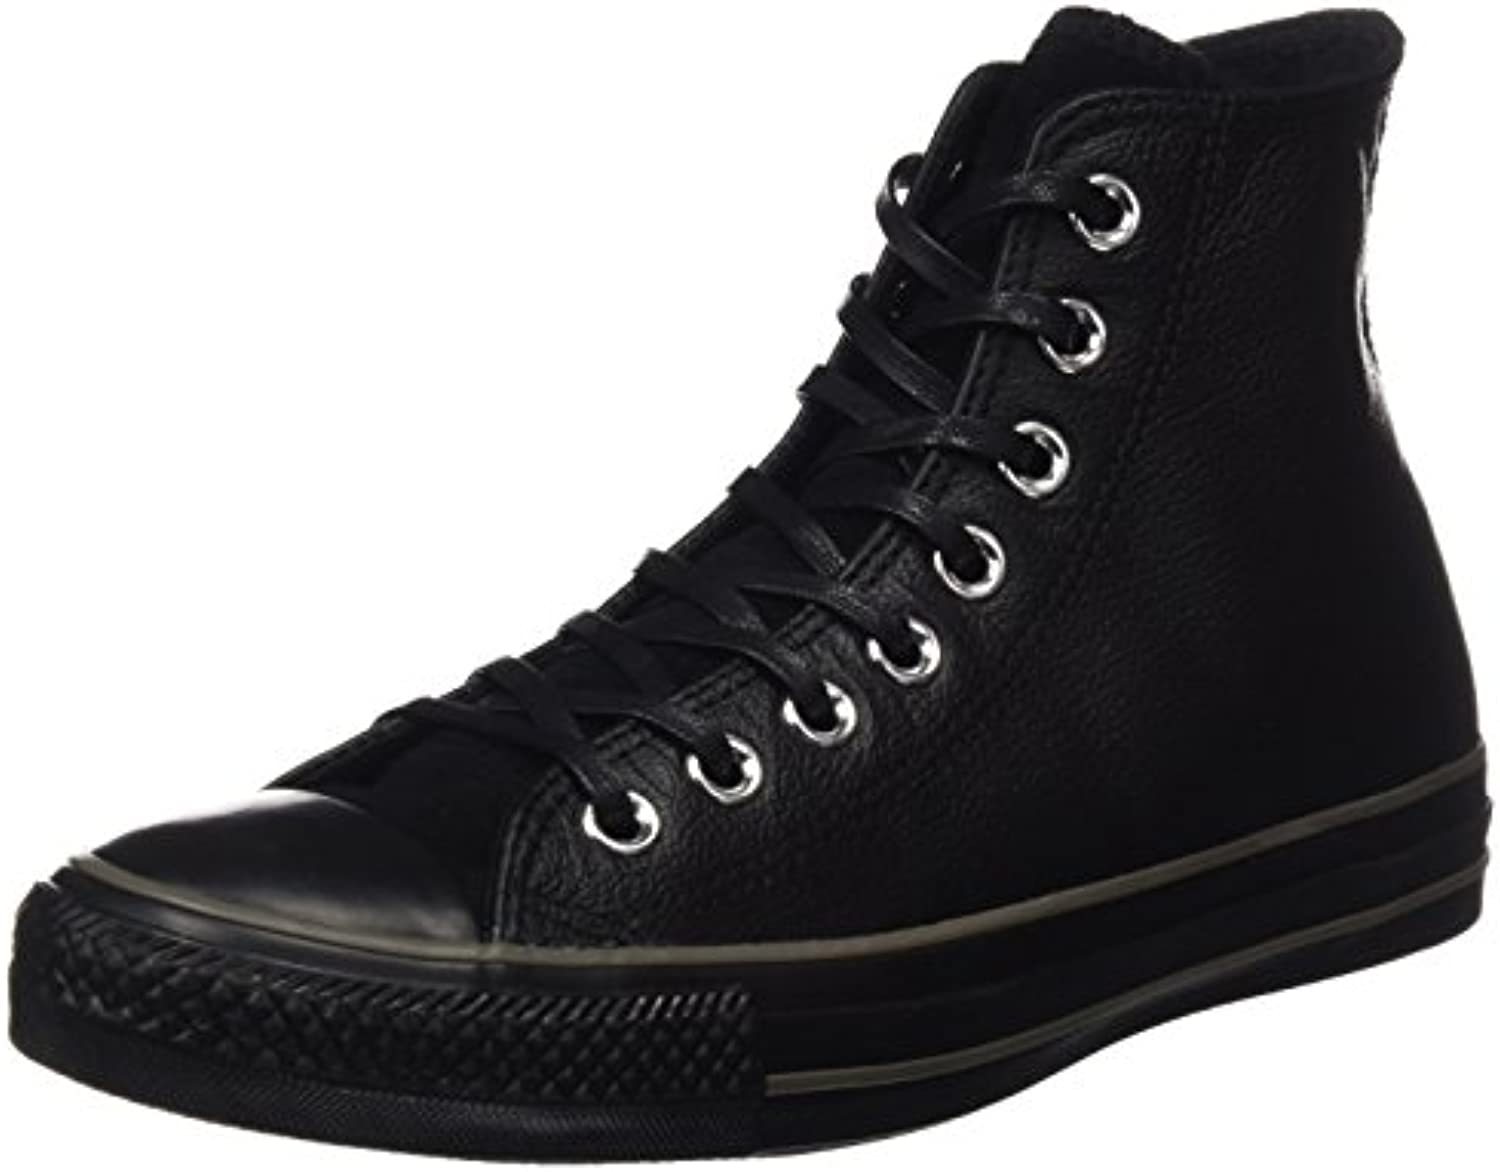 Converse Unisex Erwachsene Chuck Taylor All Star Sneakers